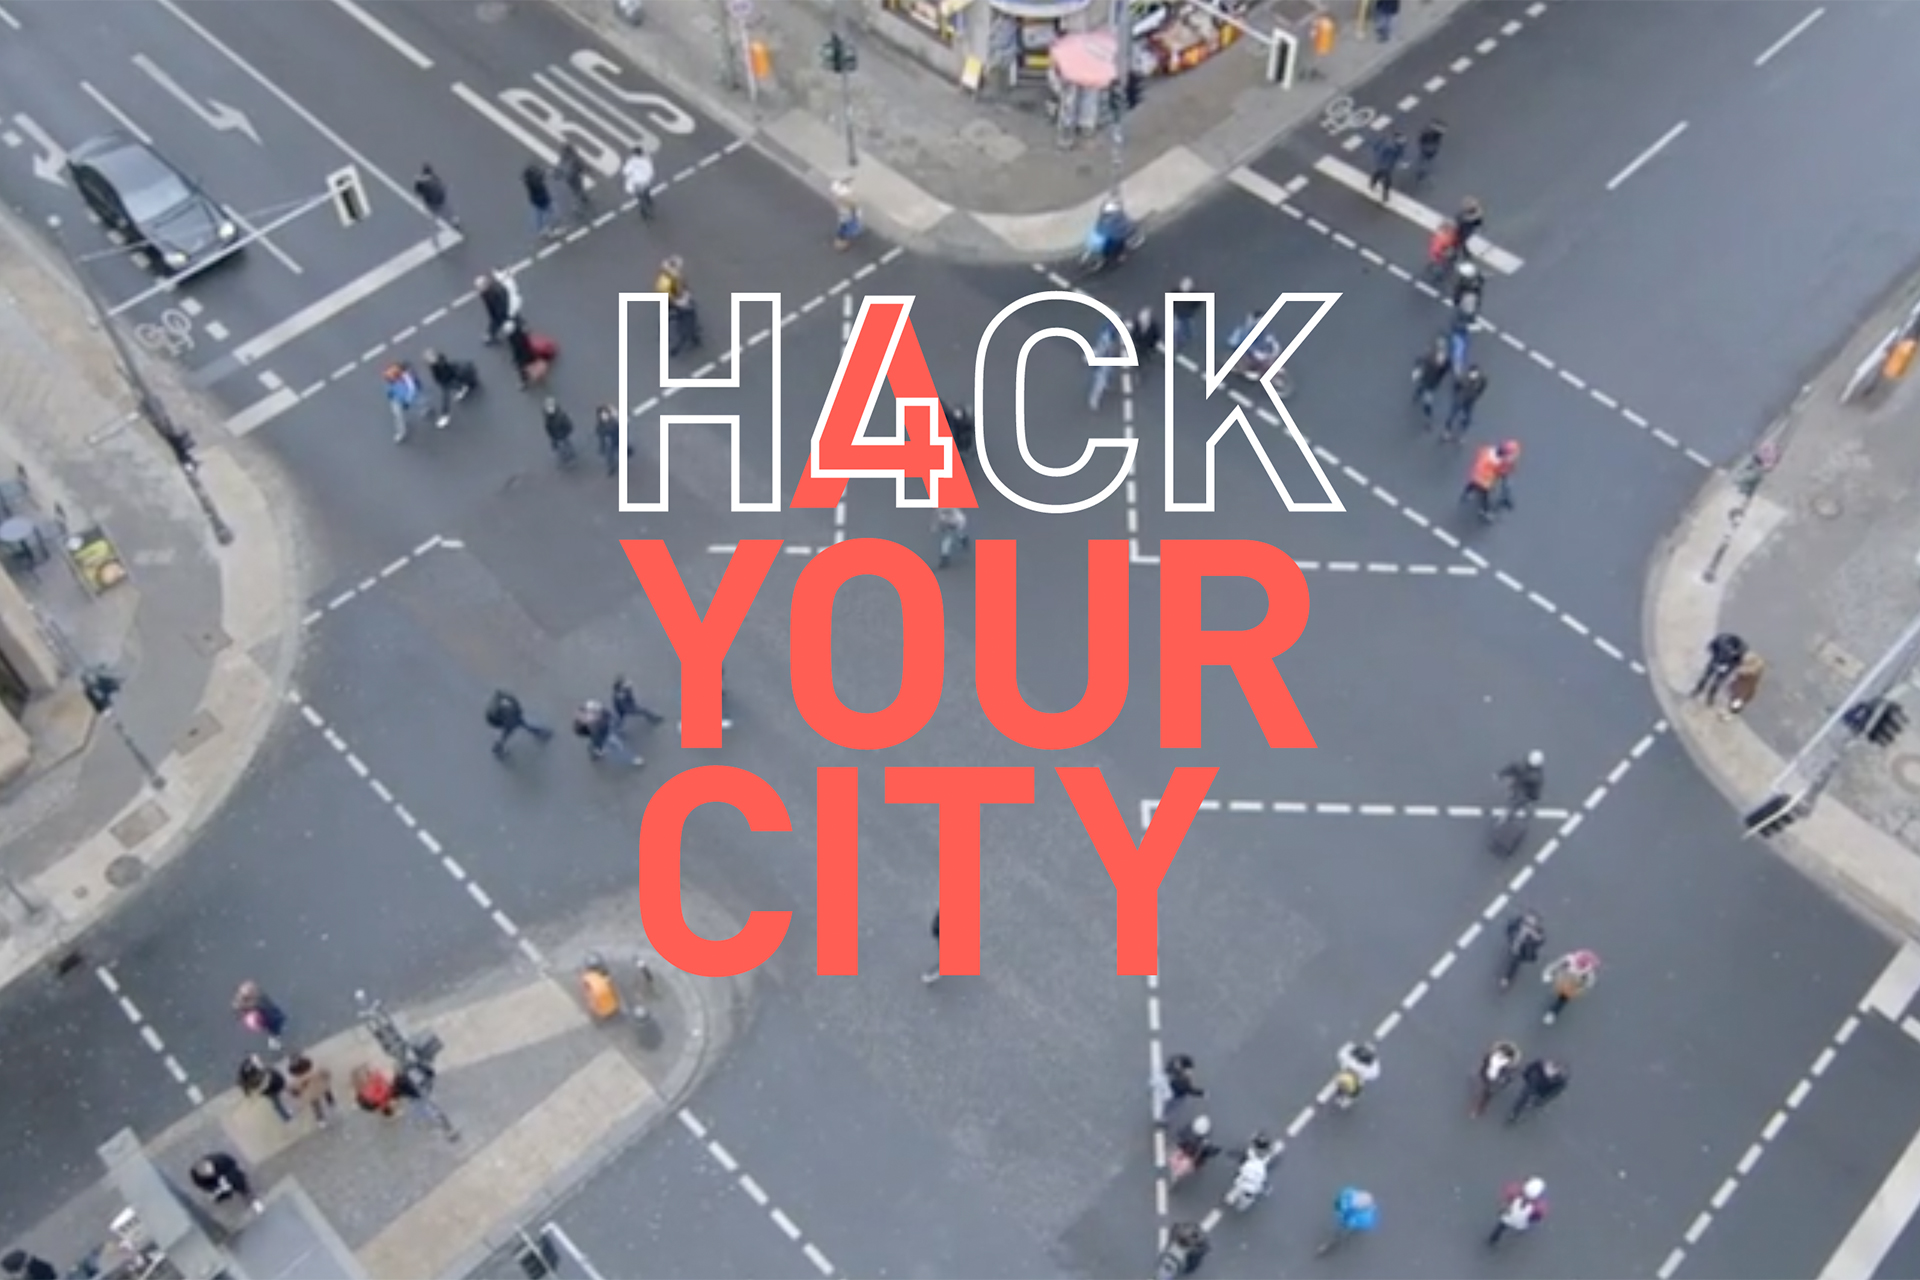 HACK-YOUR-CITY-branding